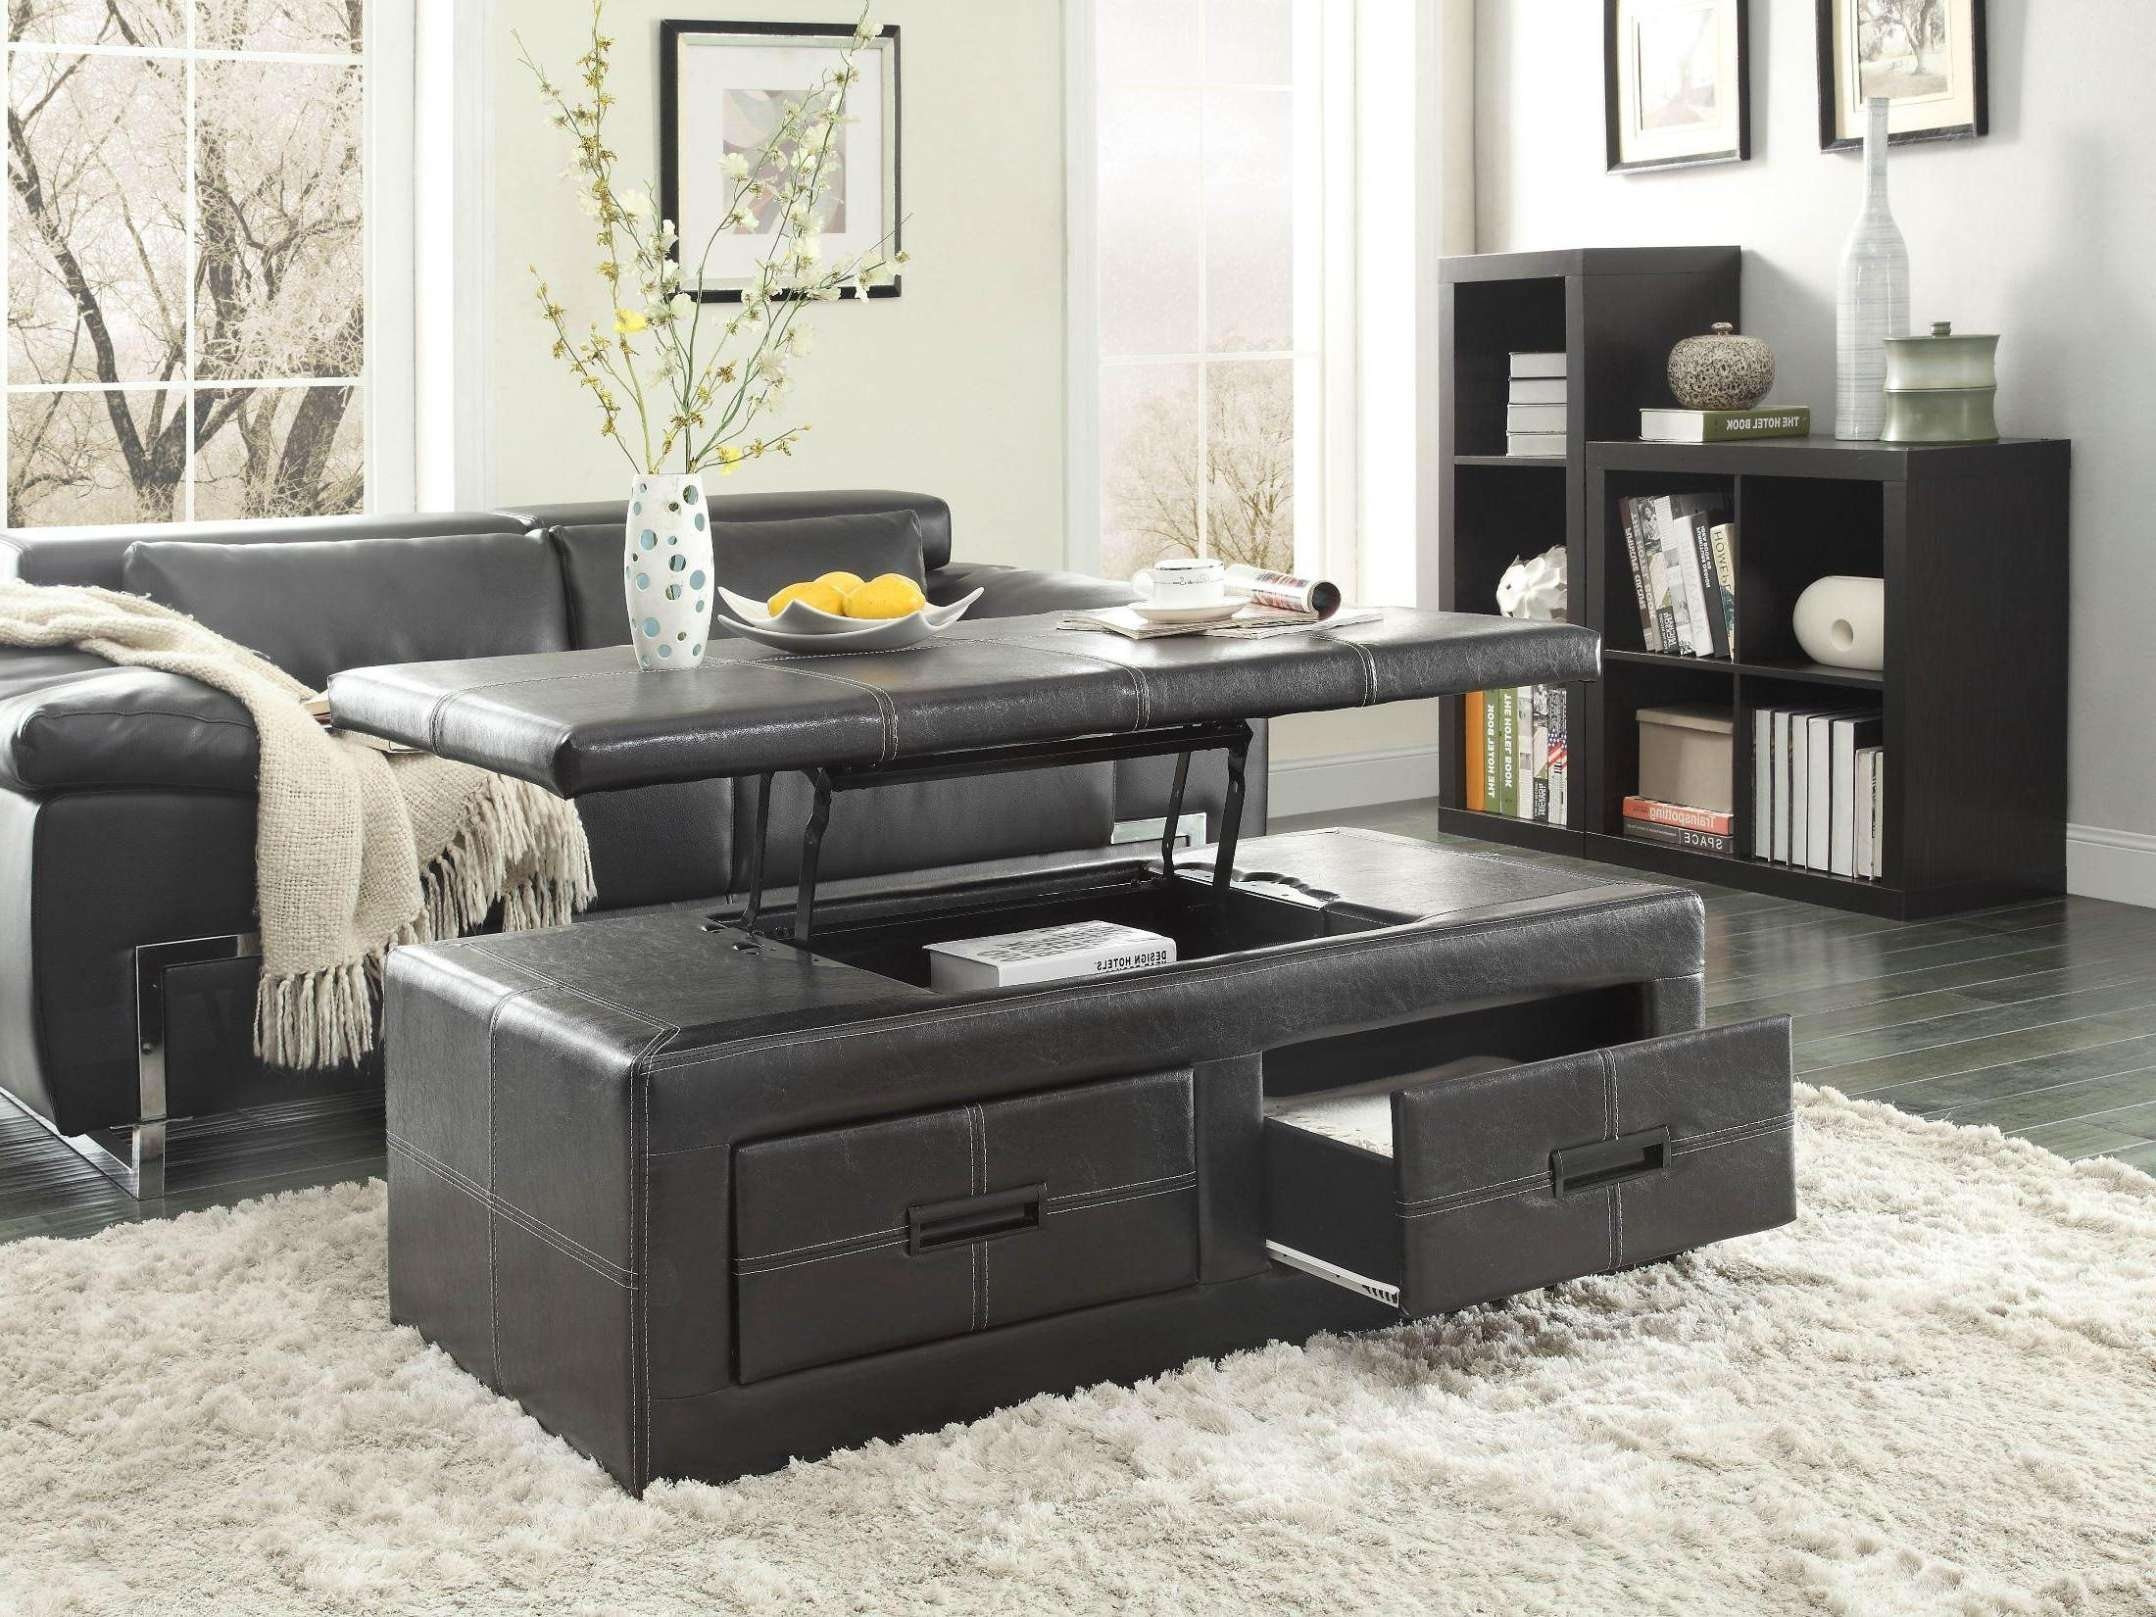 Coffee Tables : Parsons Lift Top Coffee Table In Black That Lifts Throughout Preferred Lift Top Coffee Tables With Storage (View 9 of 20)